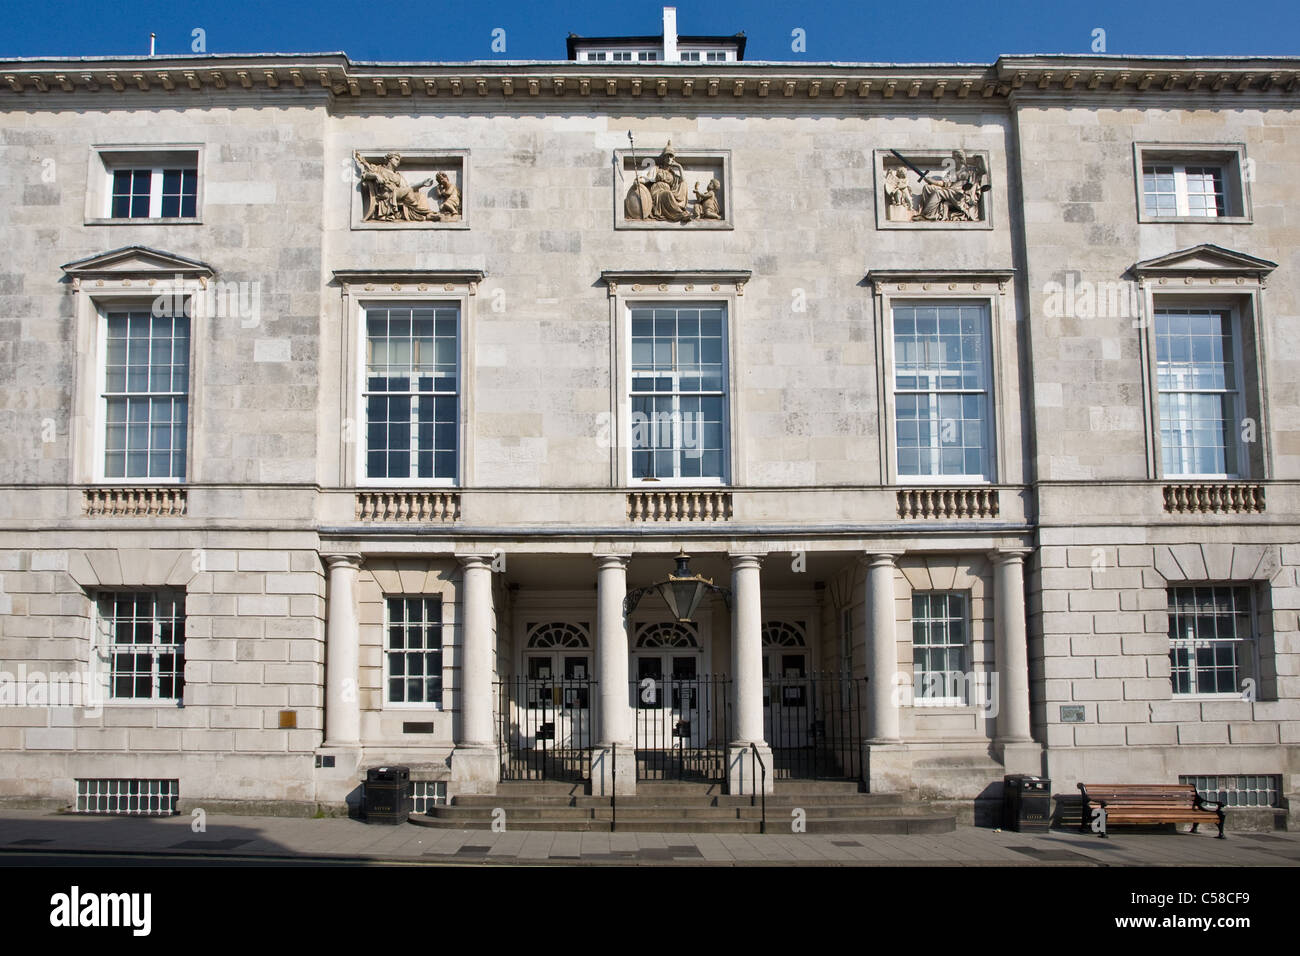 Crown & Lewes County Court (Ex County Hall) High Street, Lewes, East Sussex, Inglaterra, Reino Unido. Foto de stock